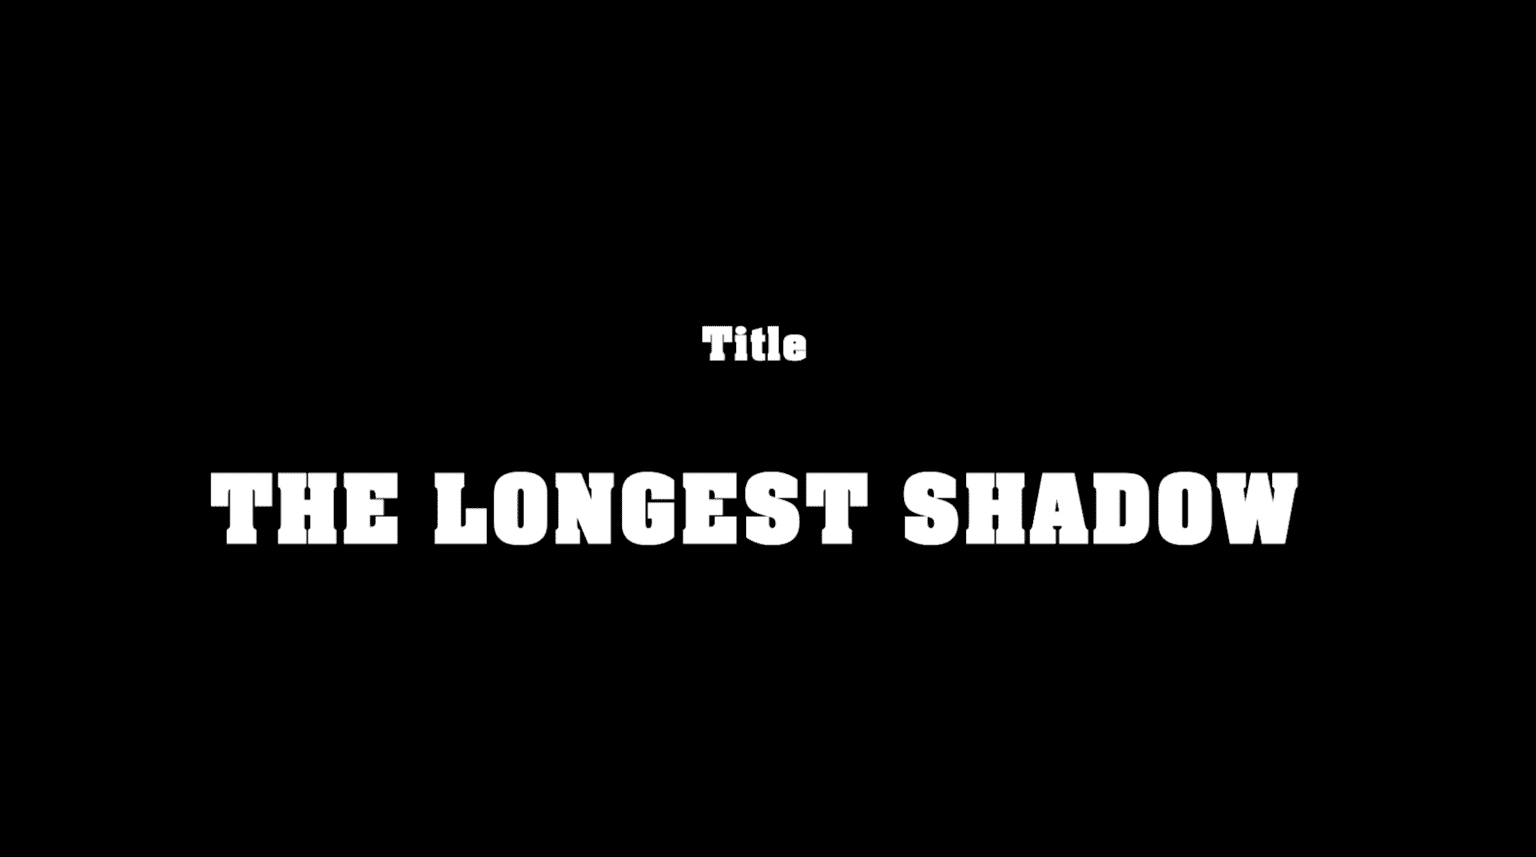 The Longest Shadow